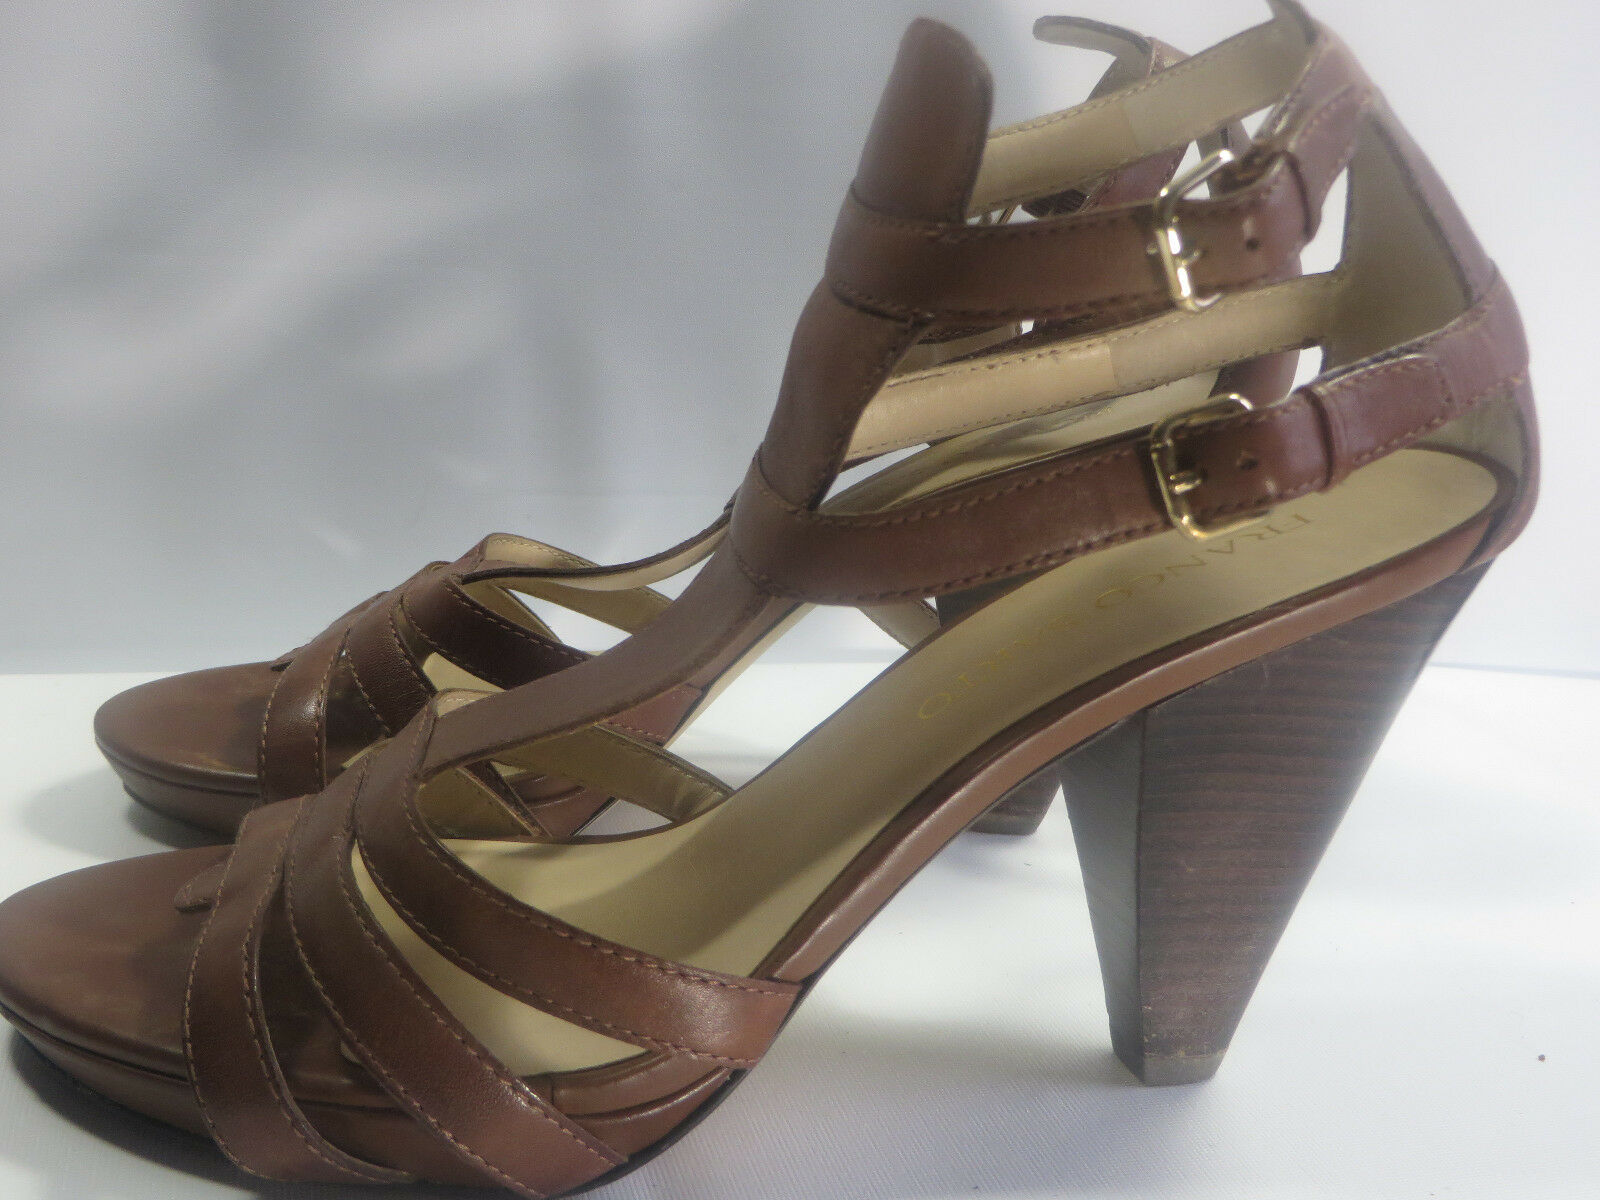 FRANCO SARTO WOMEN STRAPPY BROWN LEATHER HEELED DRESS SANDALSIZE 9.5 M EXUC